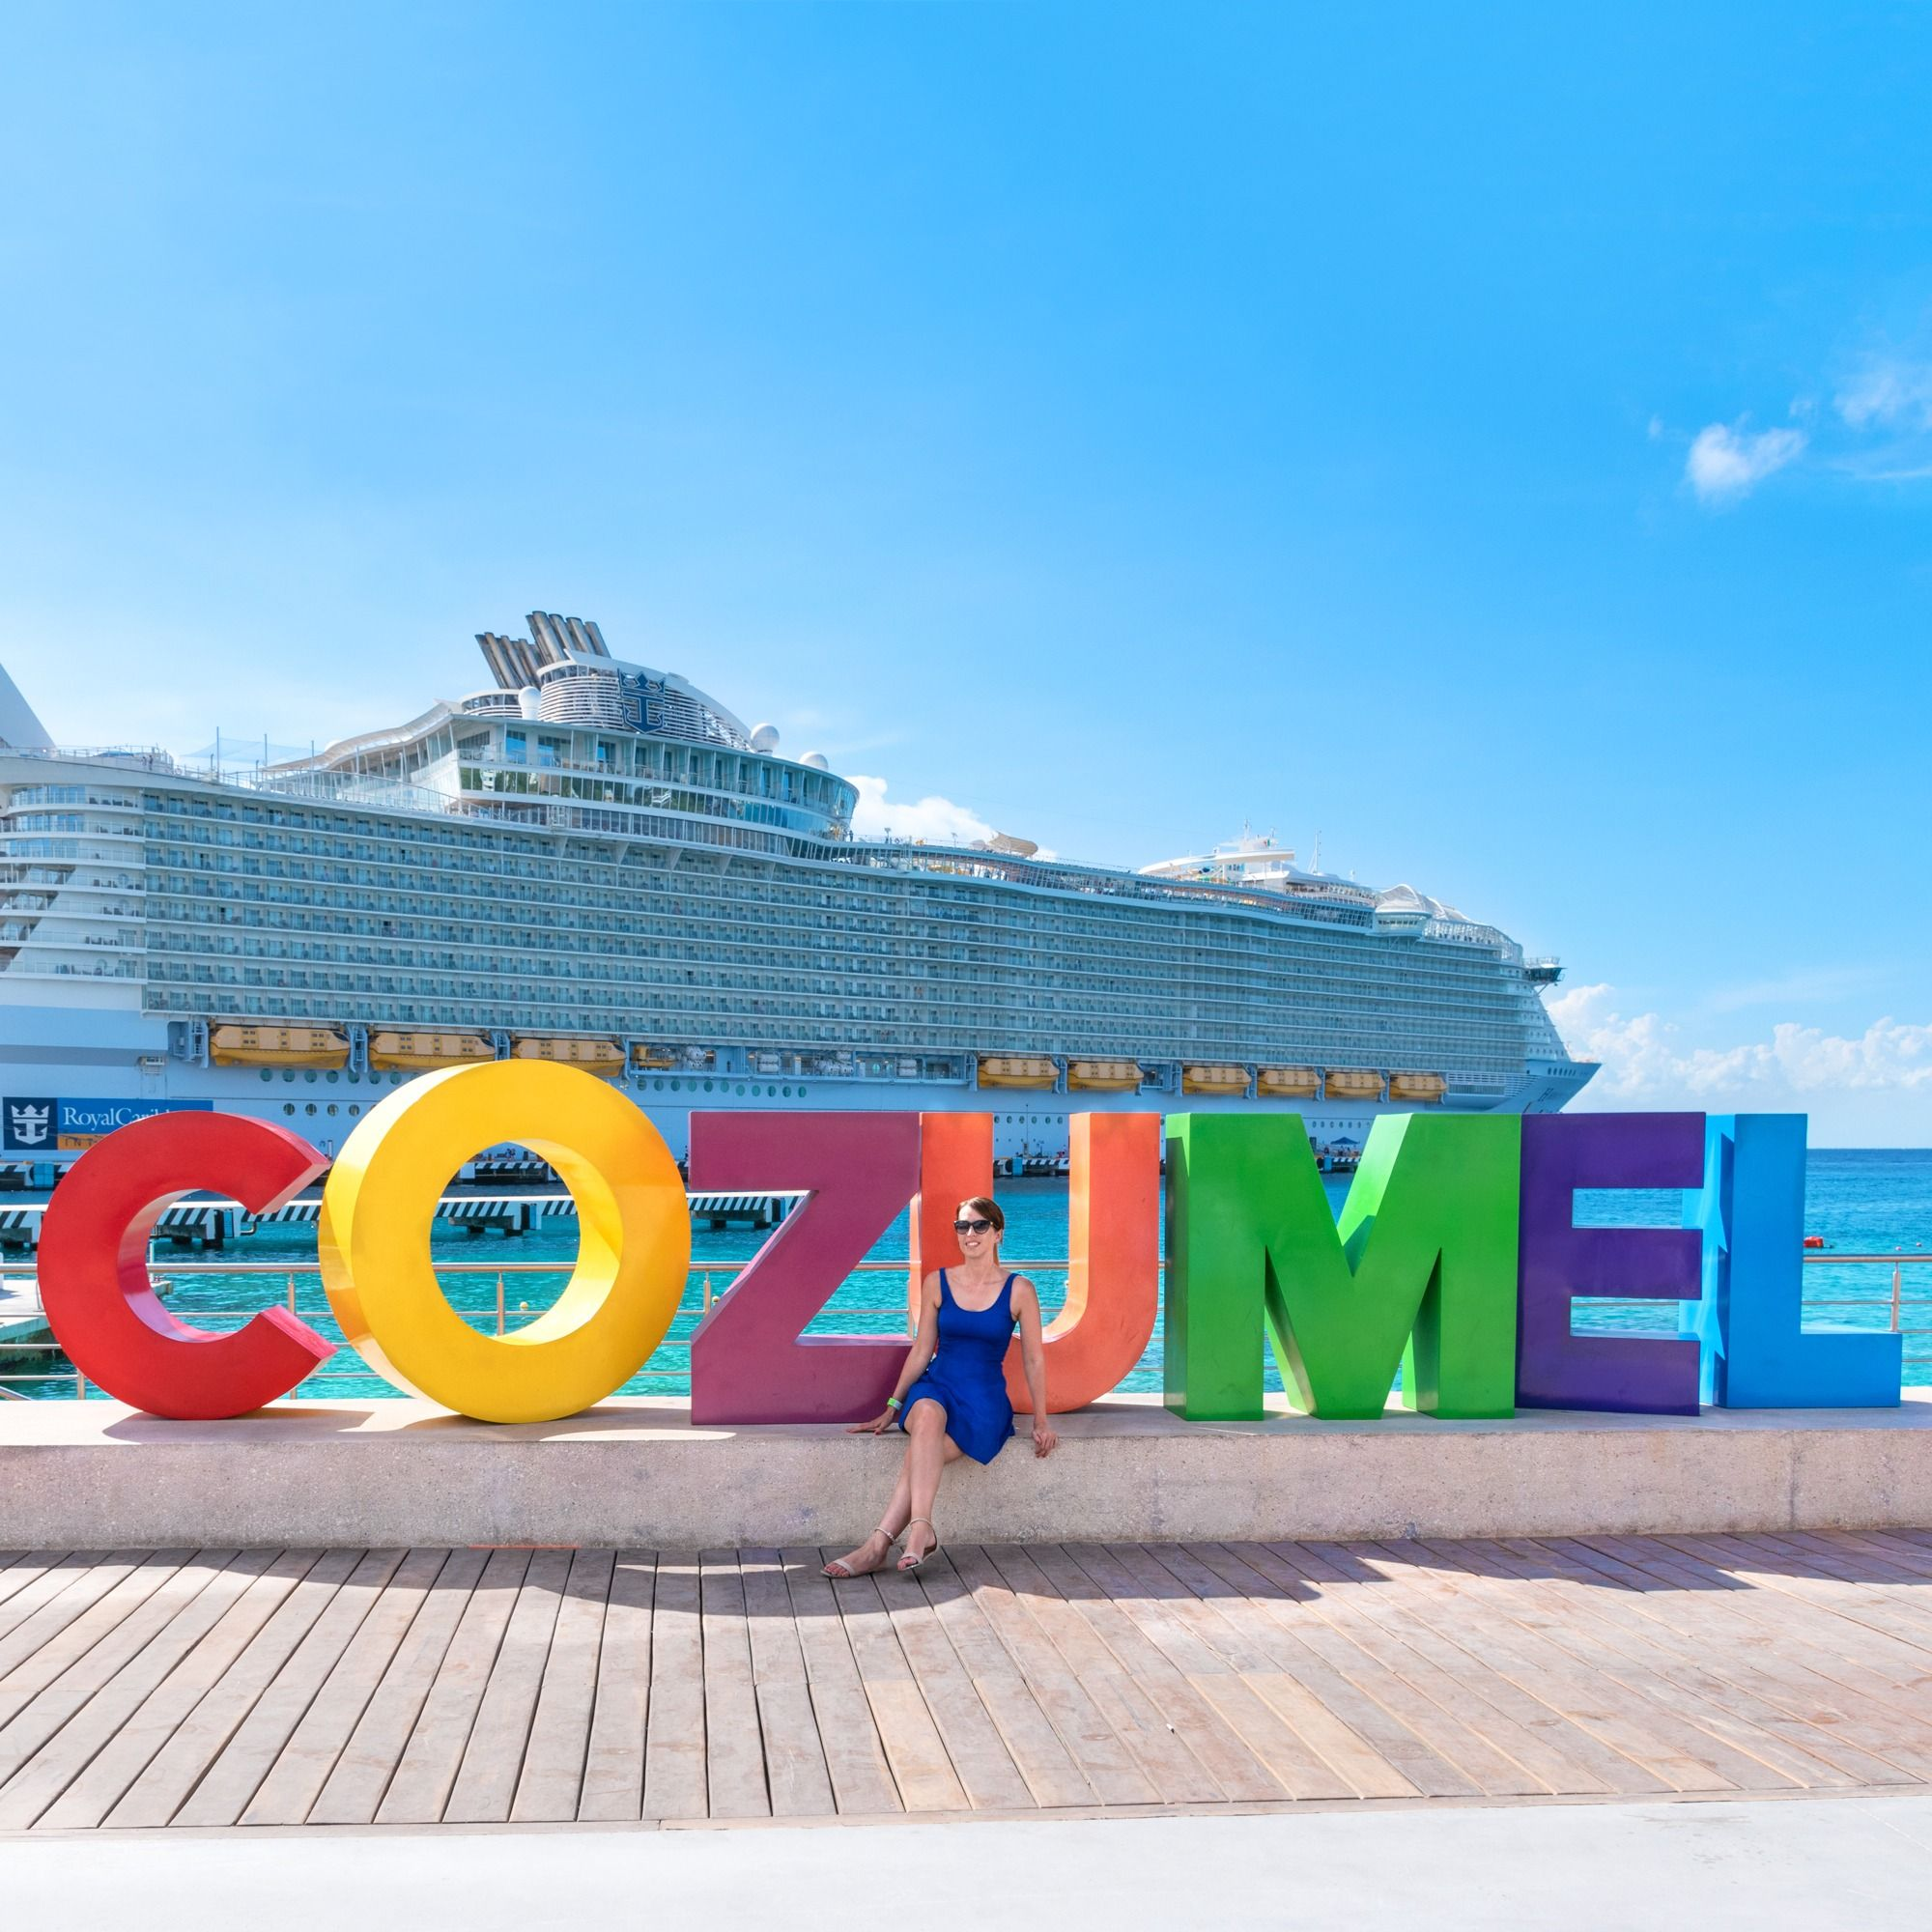 Your Guide On What To See And Do When Your Cruise Visits Cozumel